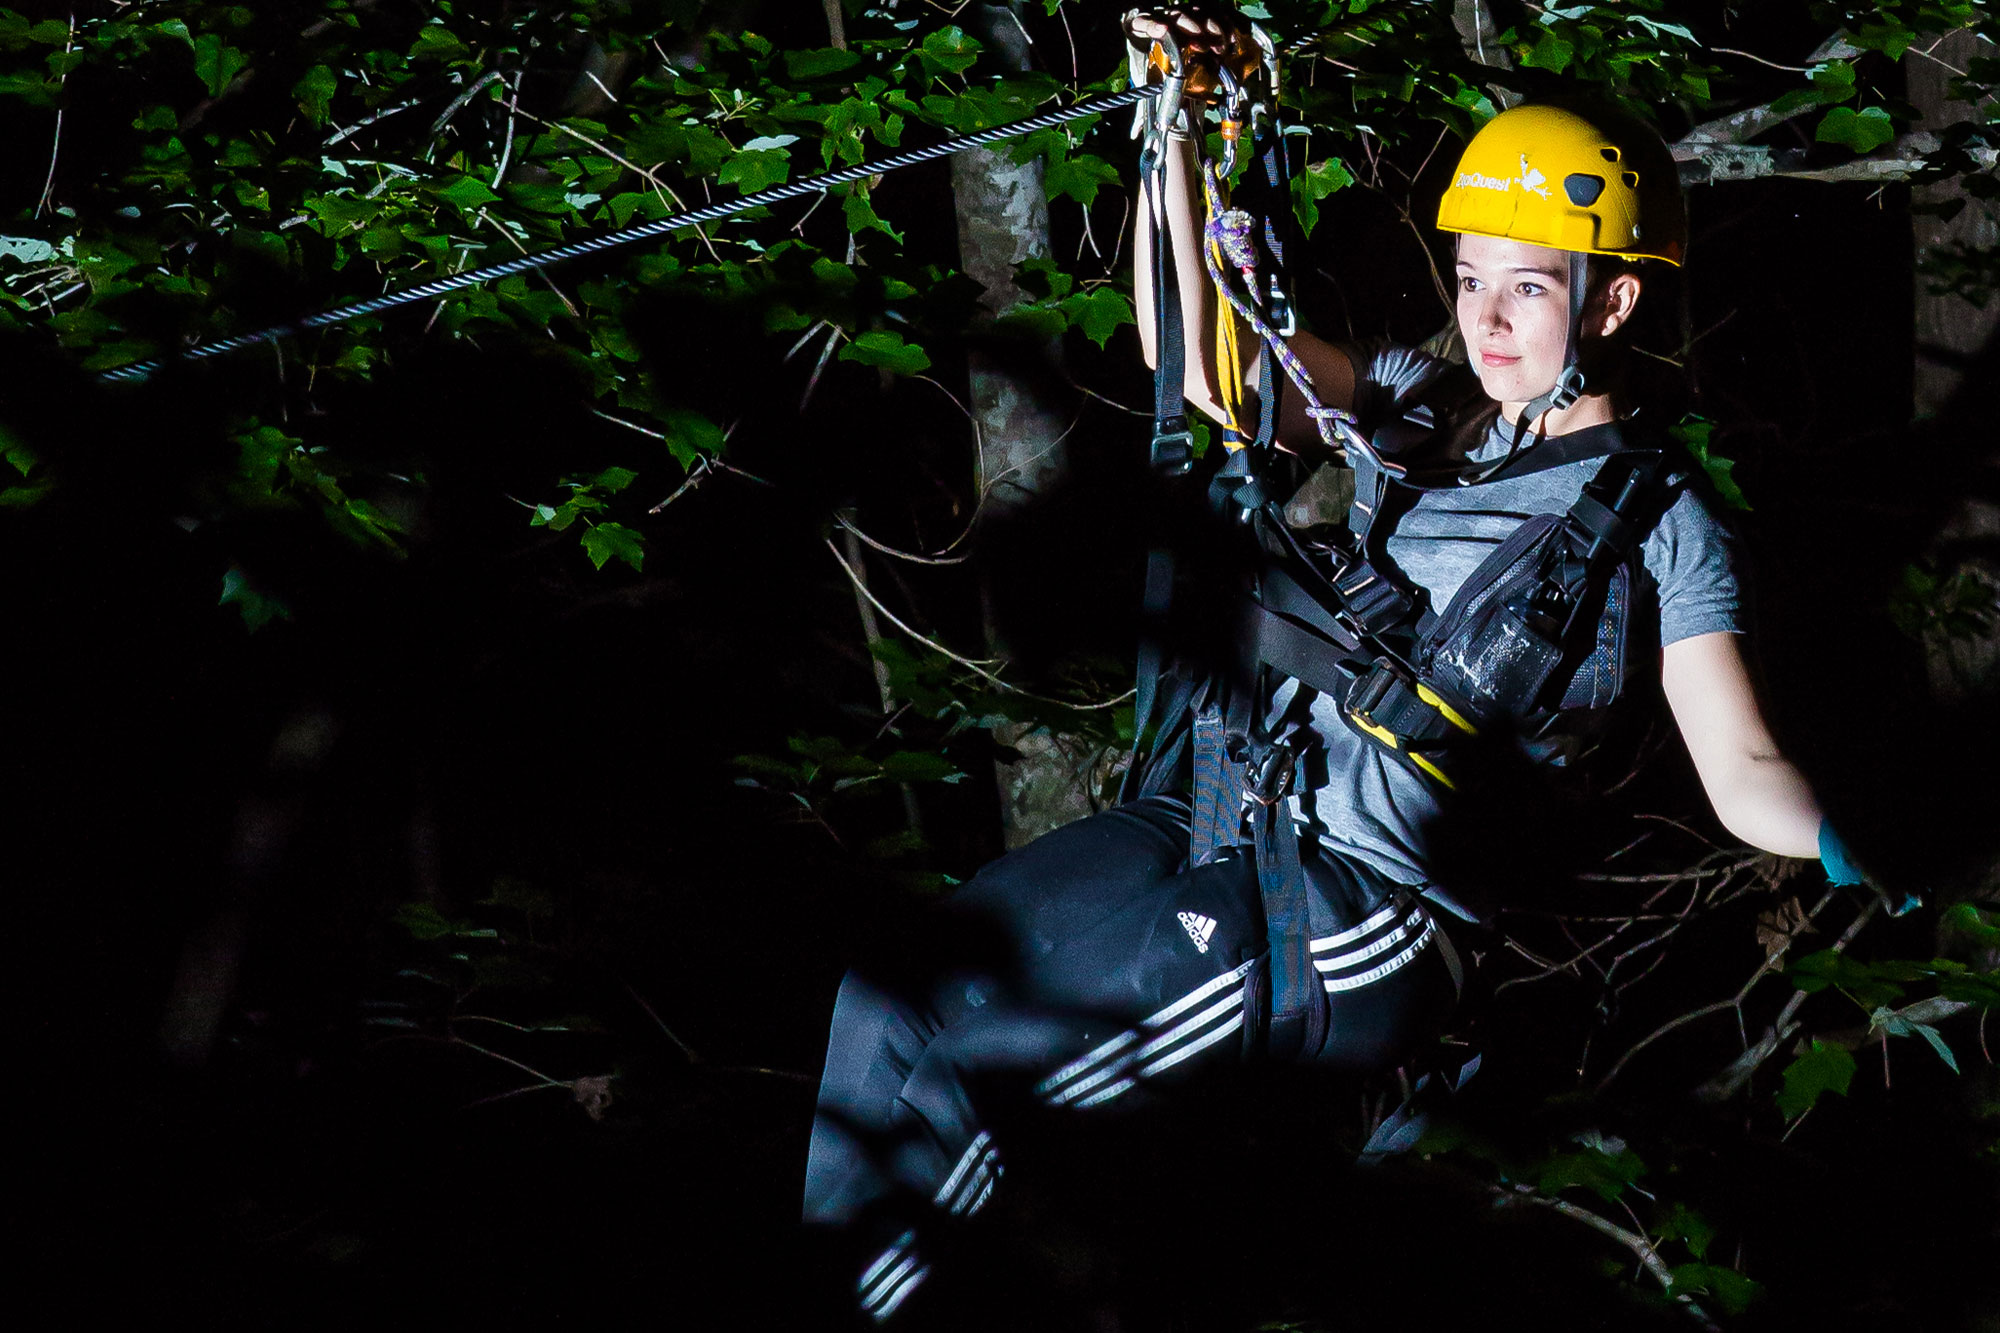 Woman on Nightquest Nighttime Zipline adventure